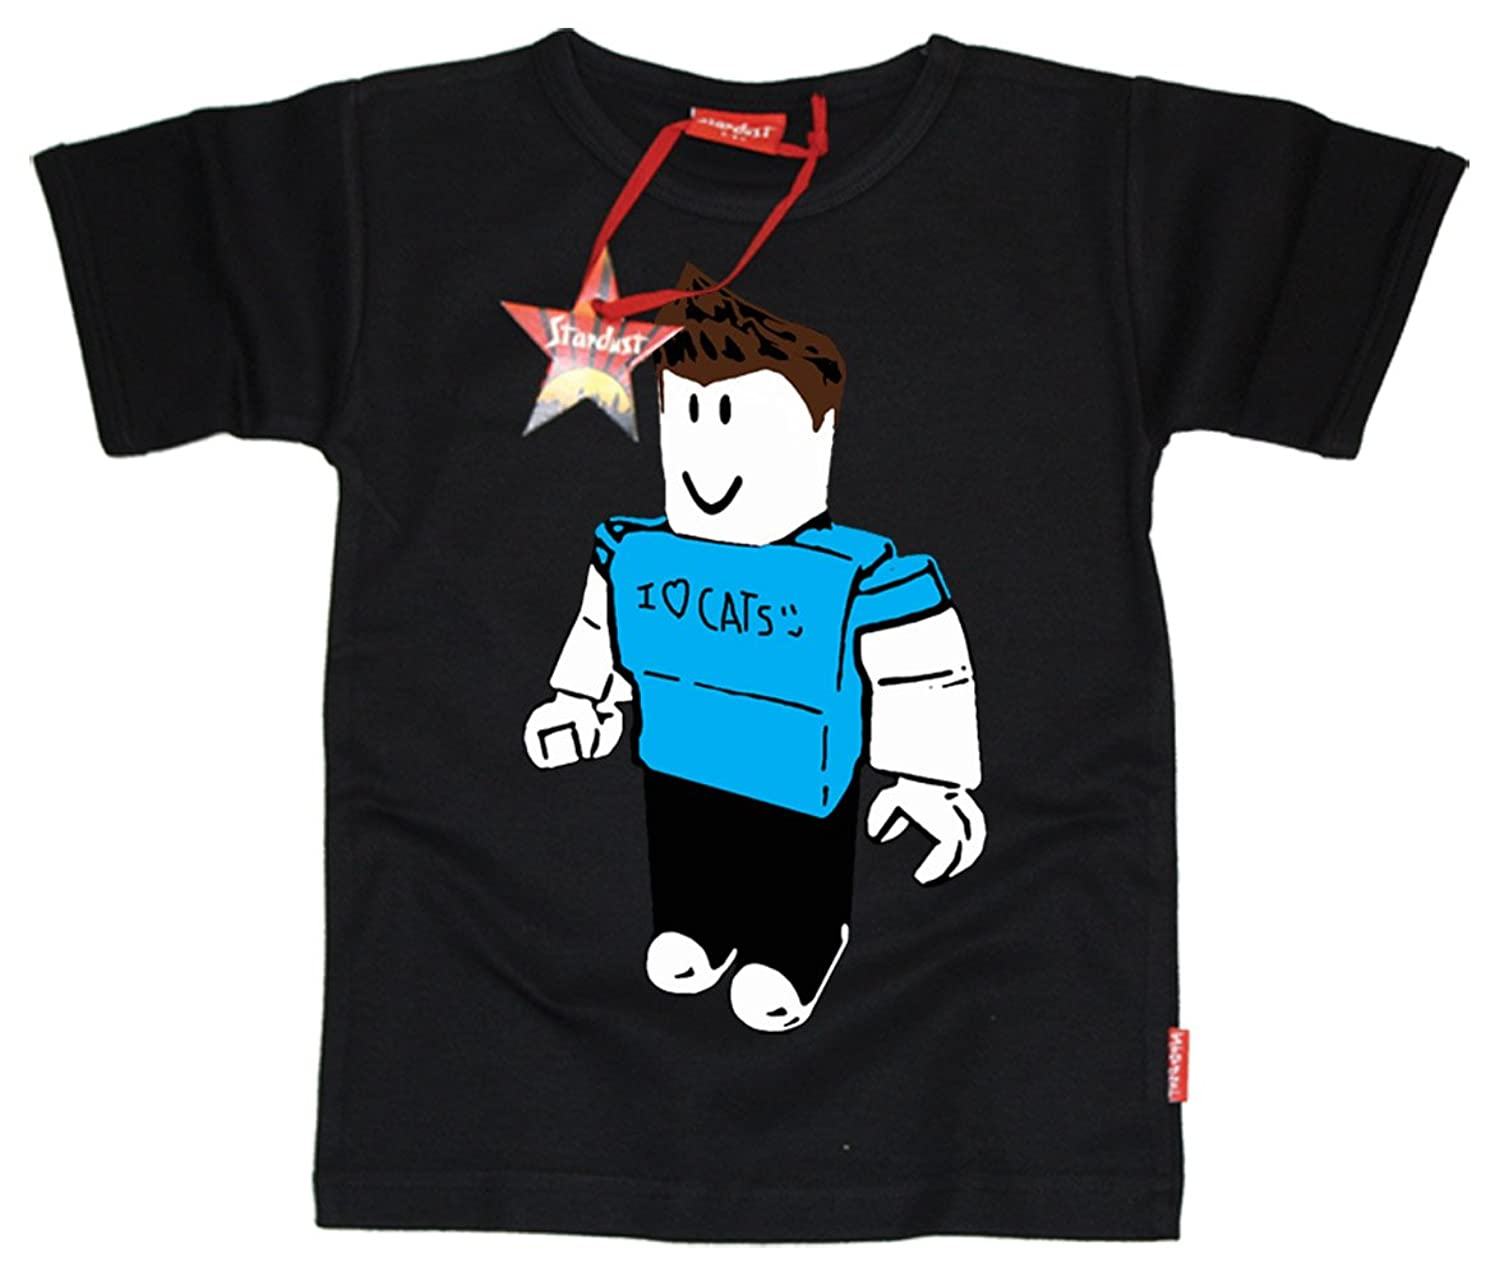 Black t shirt roblox - Stardust Ethical Kids Childrens Denis Roblox Youtube Gamer T Shirt Black